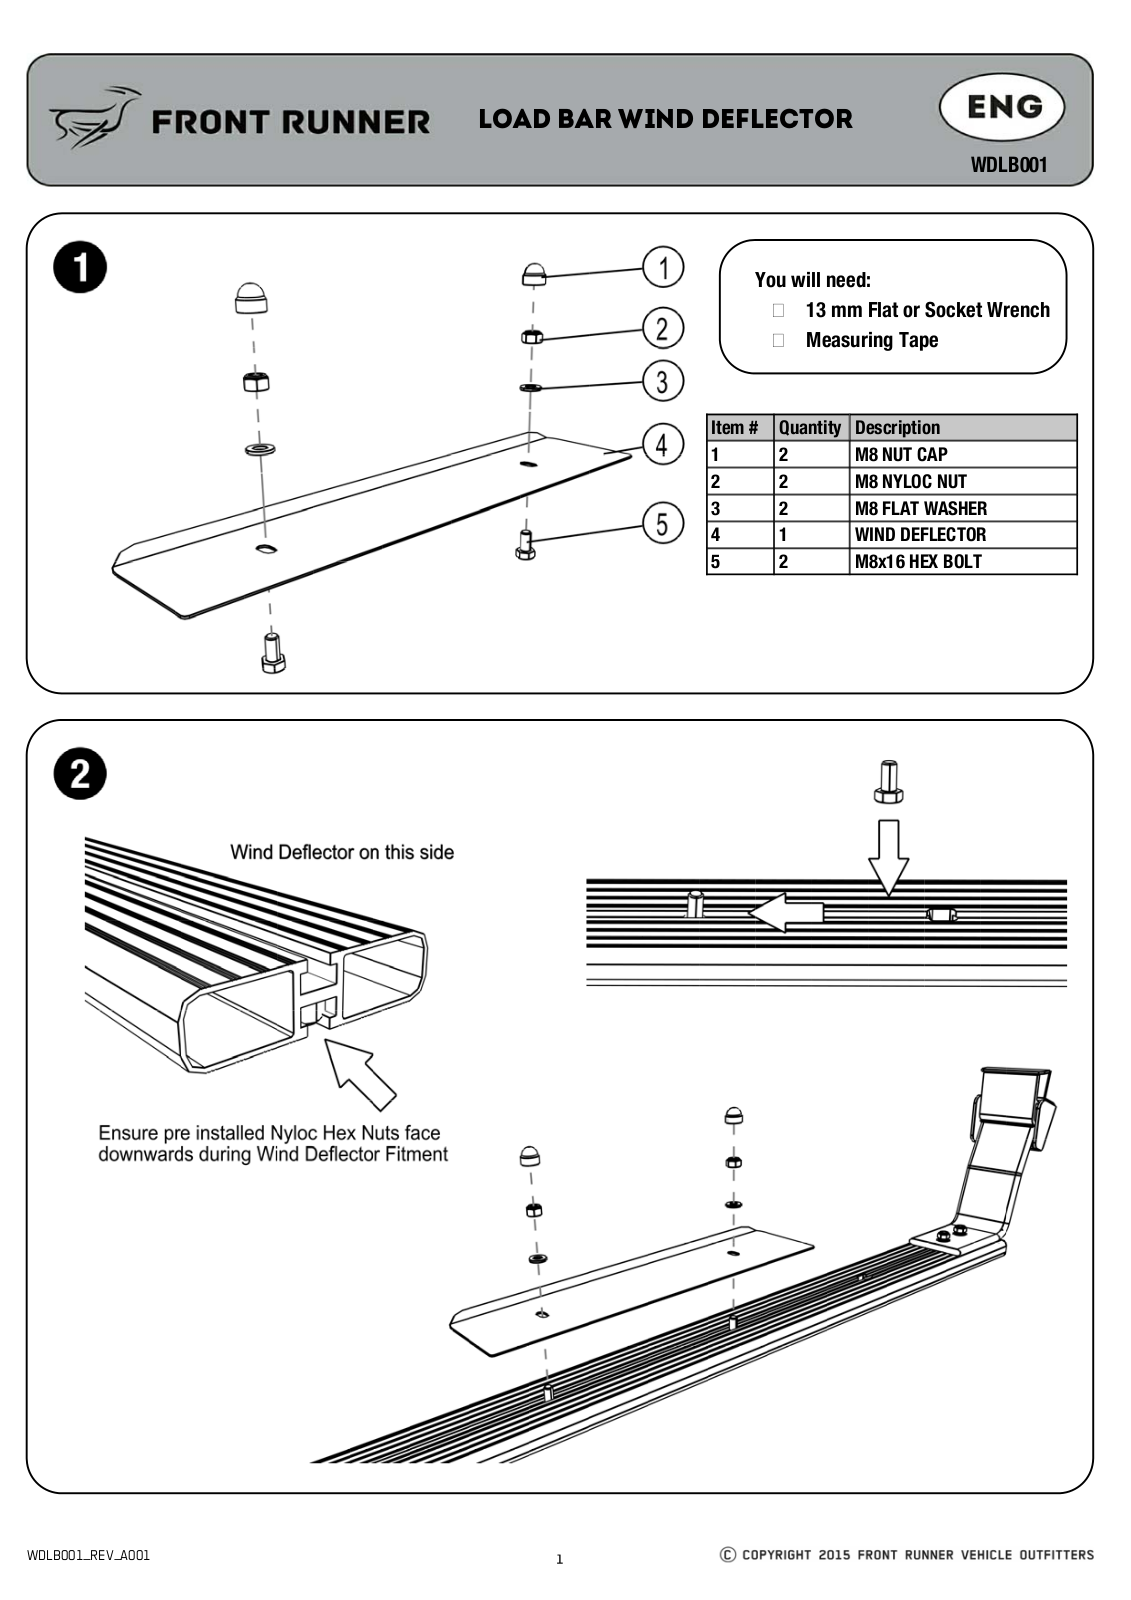 Installation instructions for WDLB001